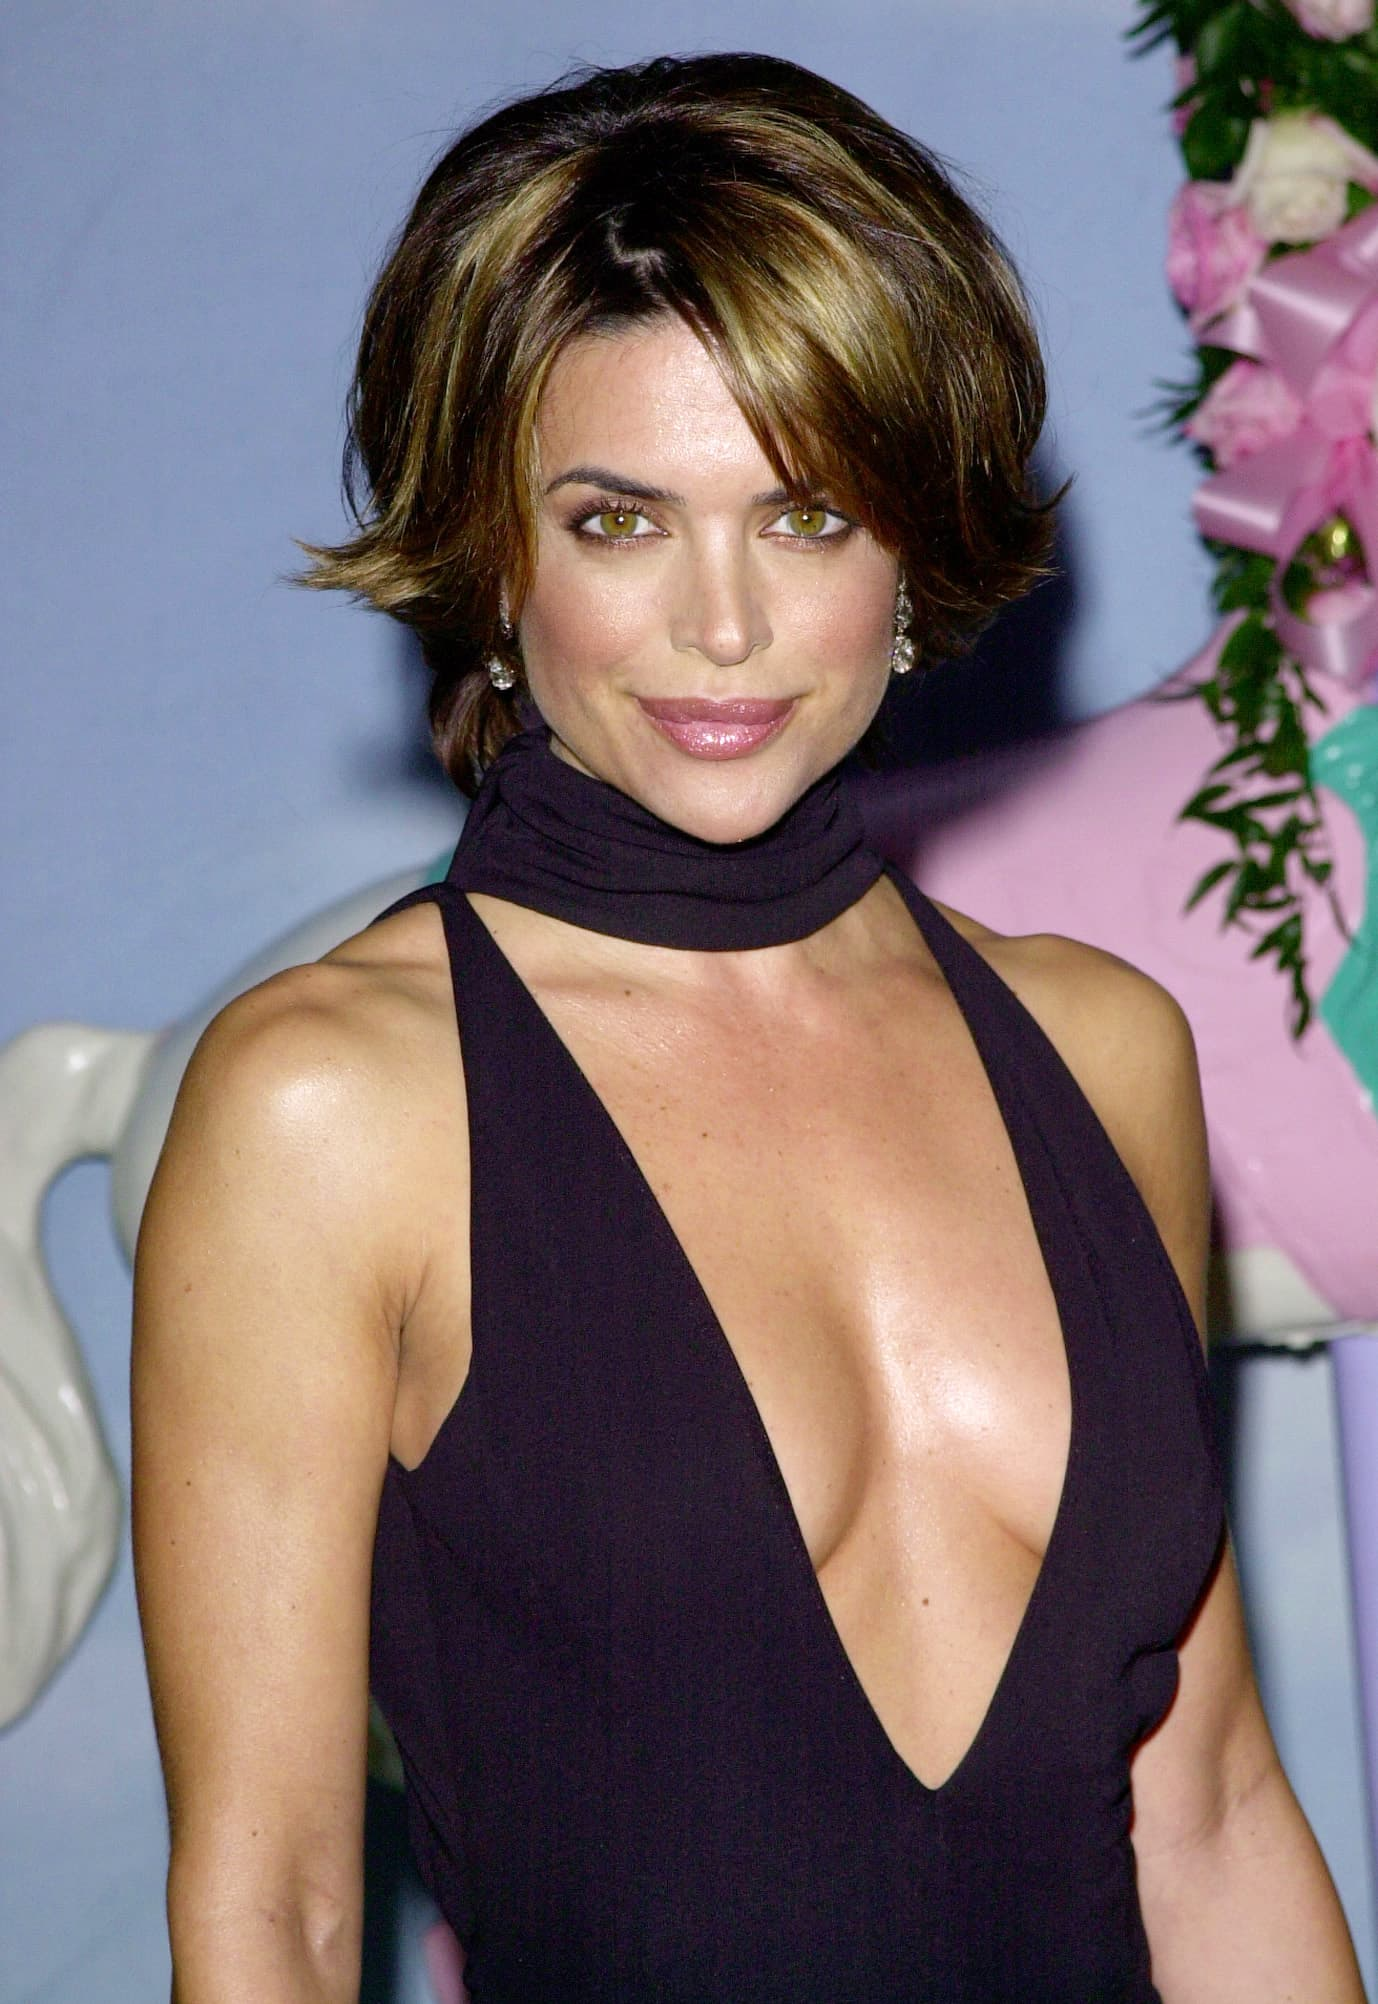 Lisa Rinna Before All The Plastic Surgery photo - 1